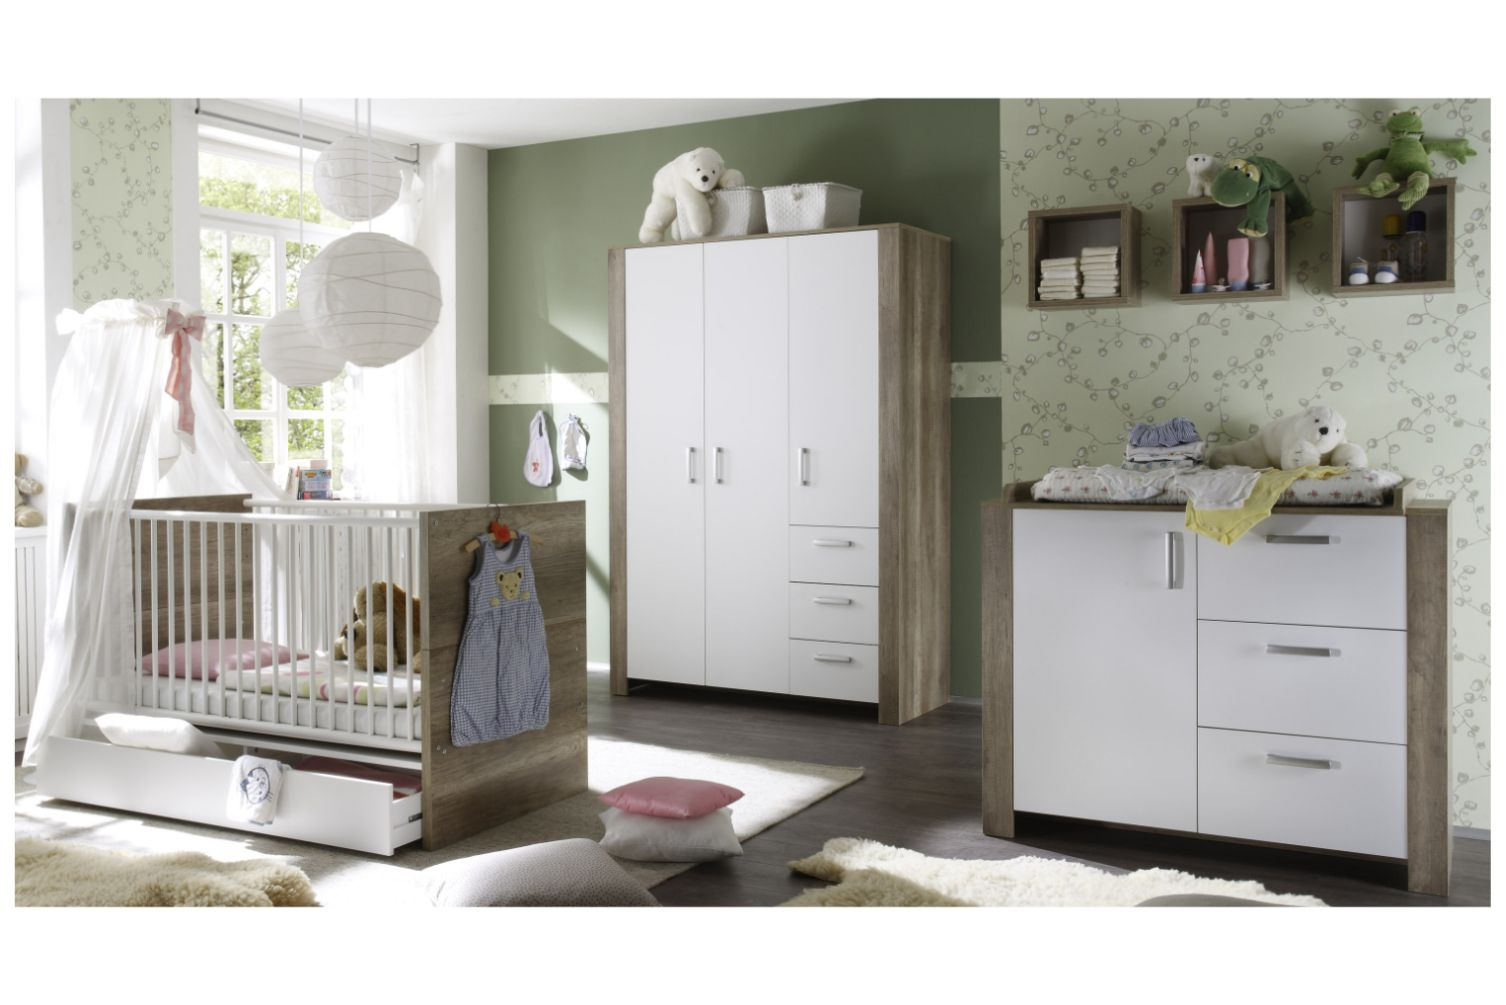 kinderzimmer baby set komplett erstausstattung. Black Bedroom Furniture Sets. Home Design Ideas